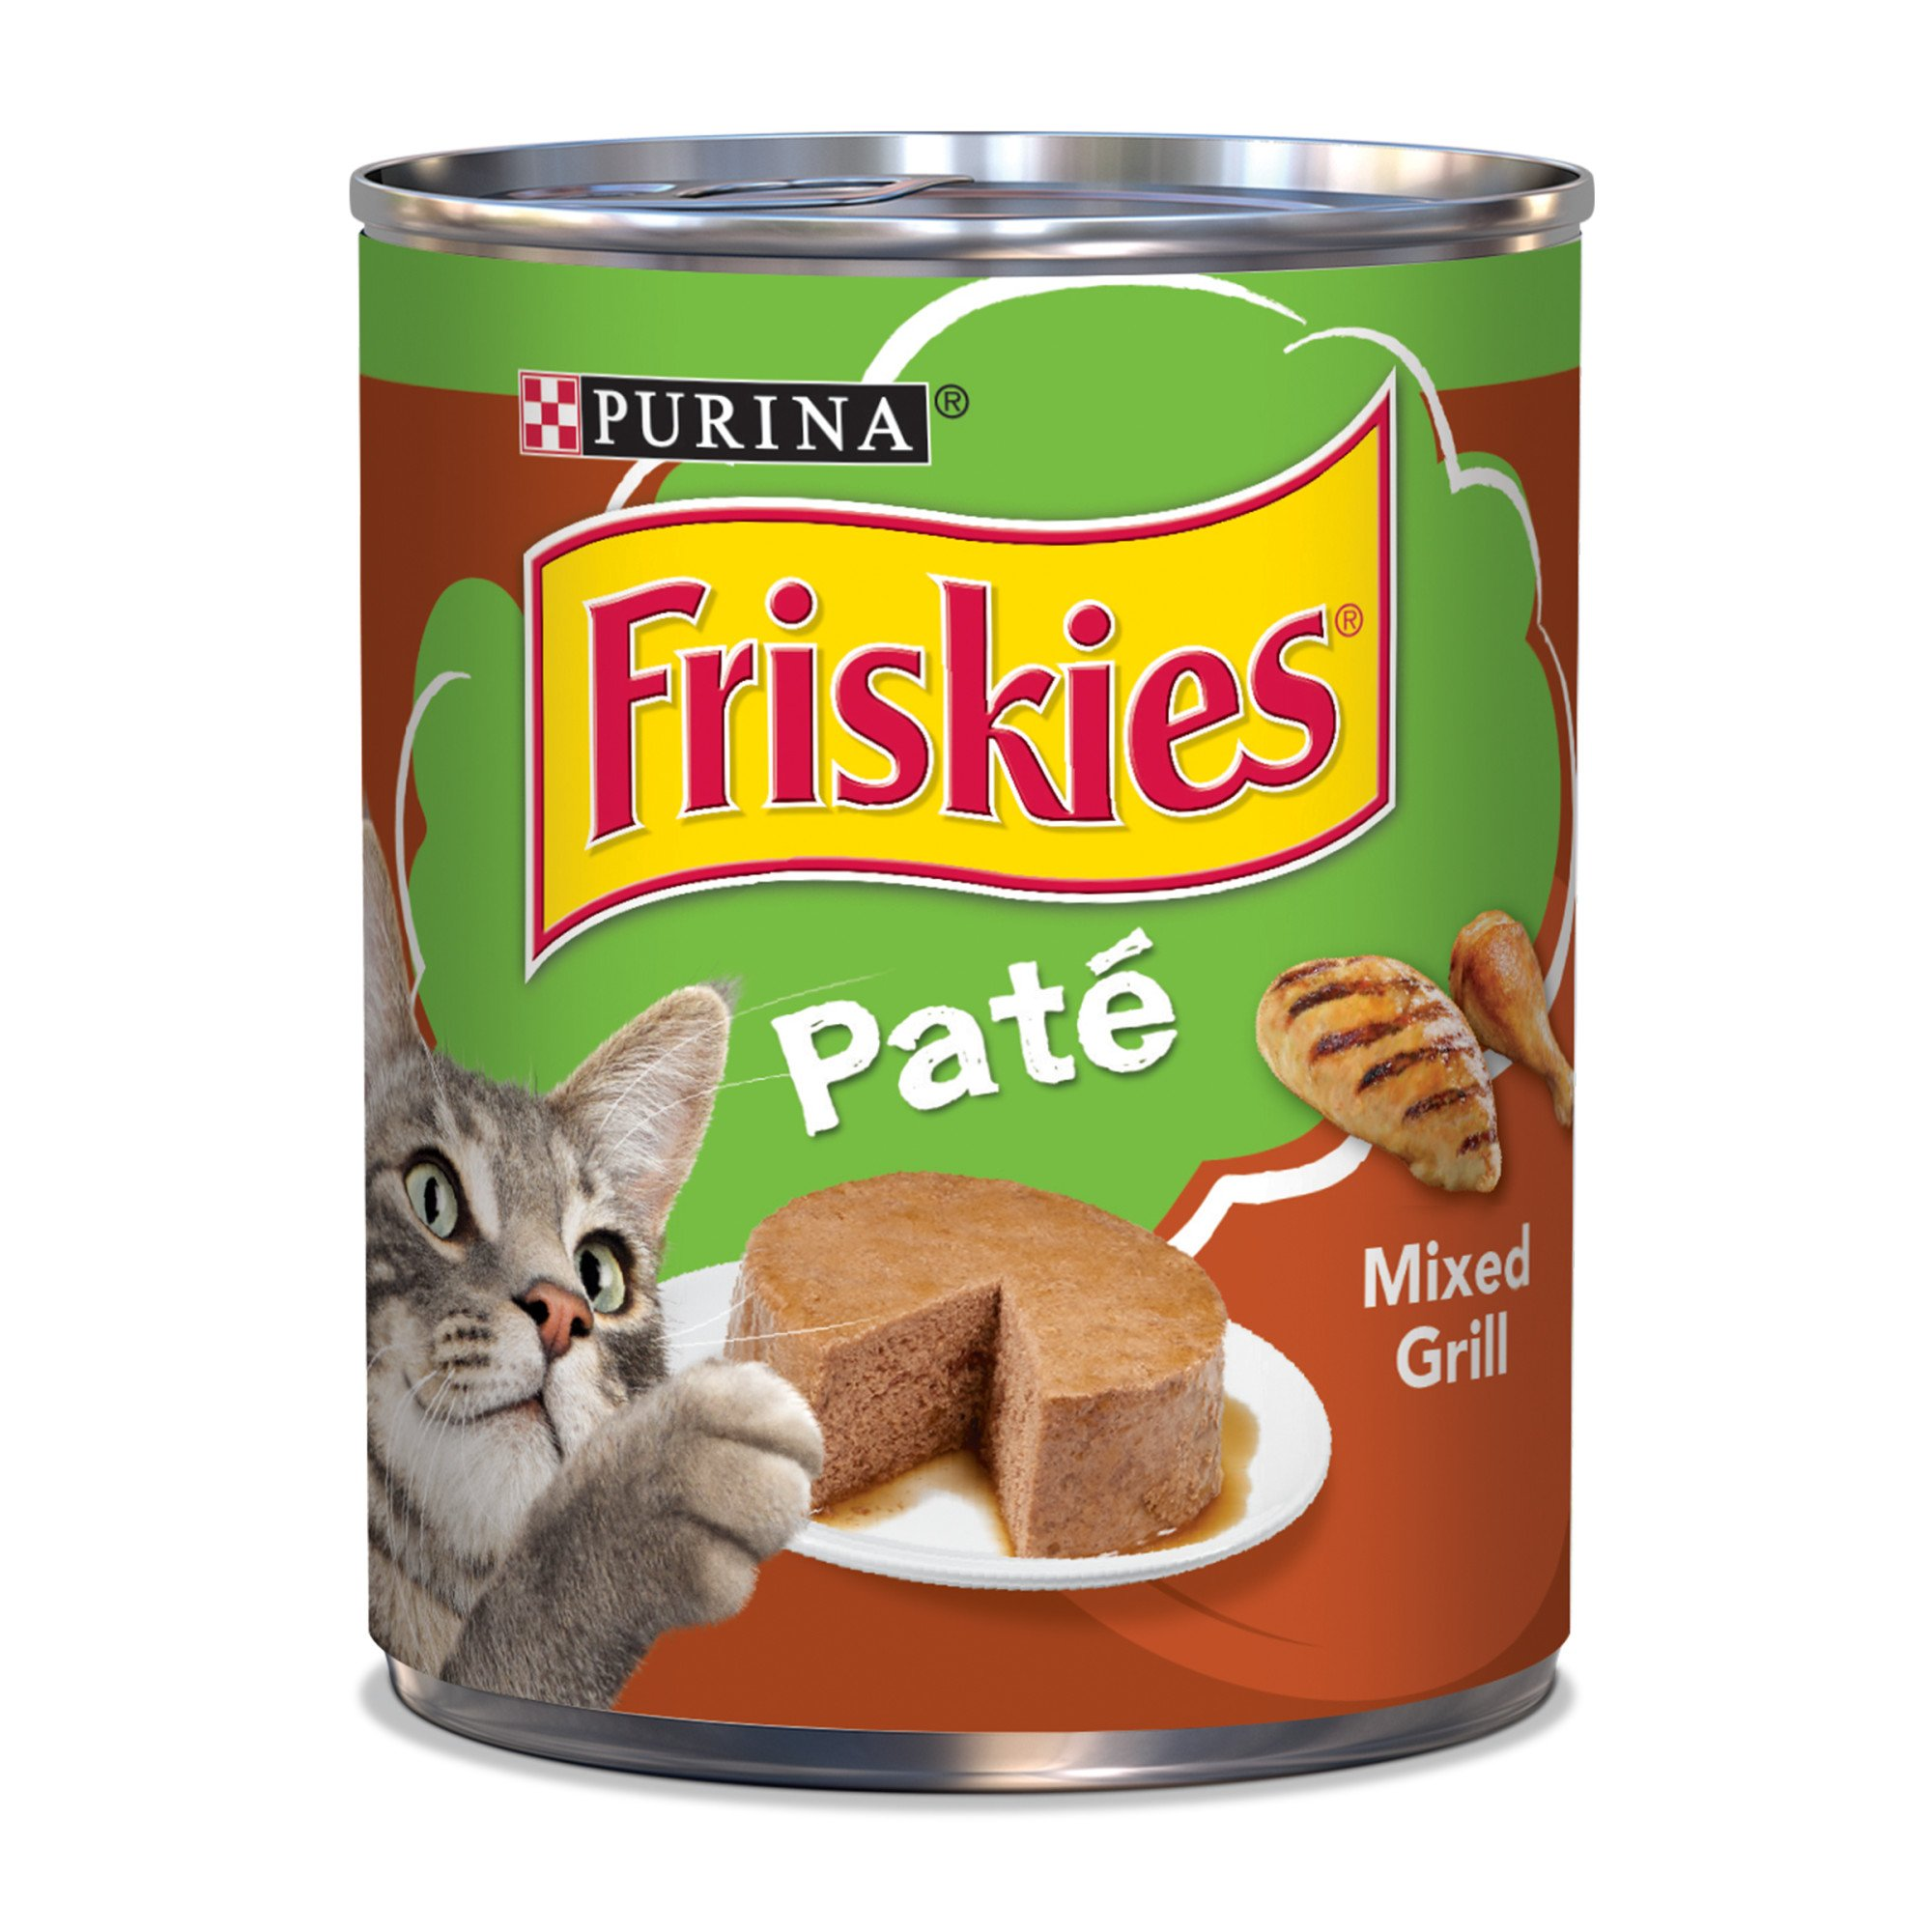 Pictures Of Canned Cat Food